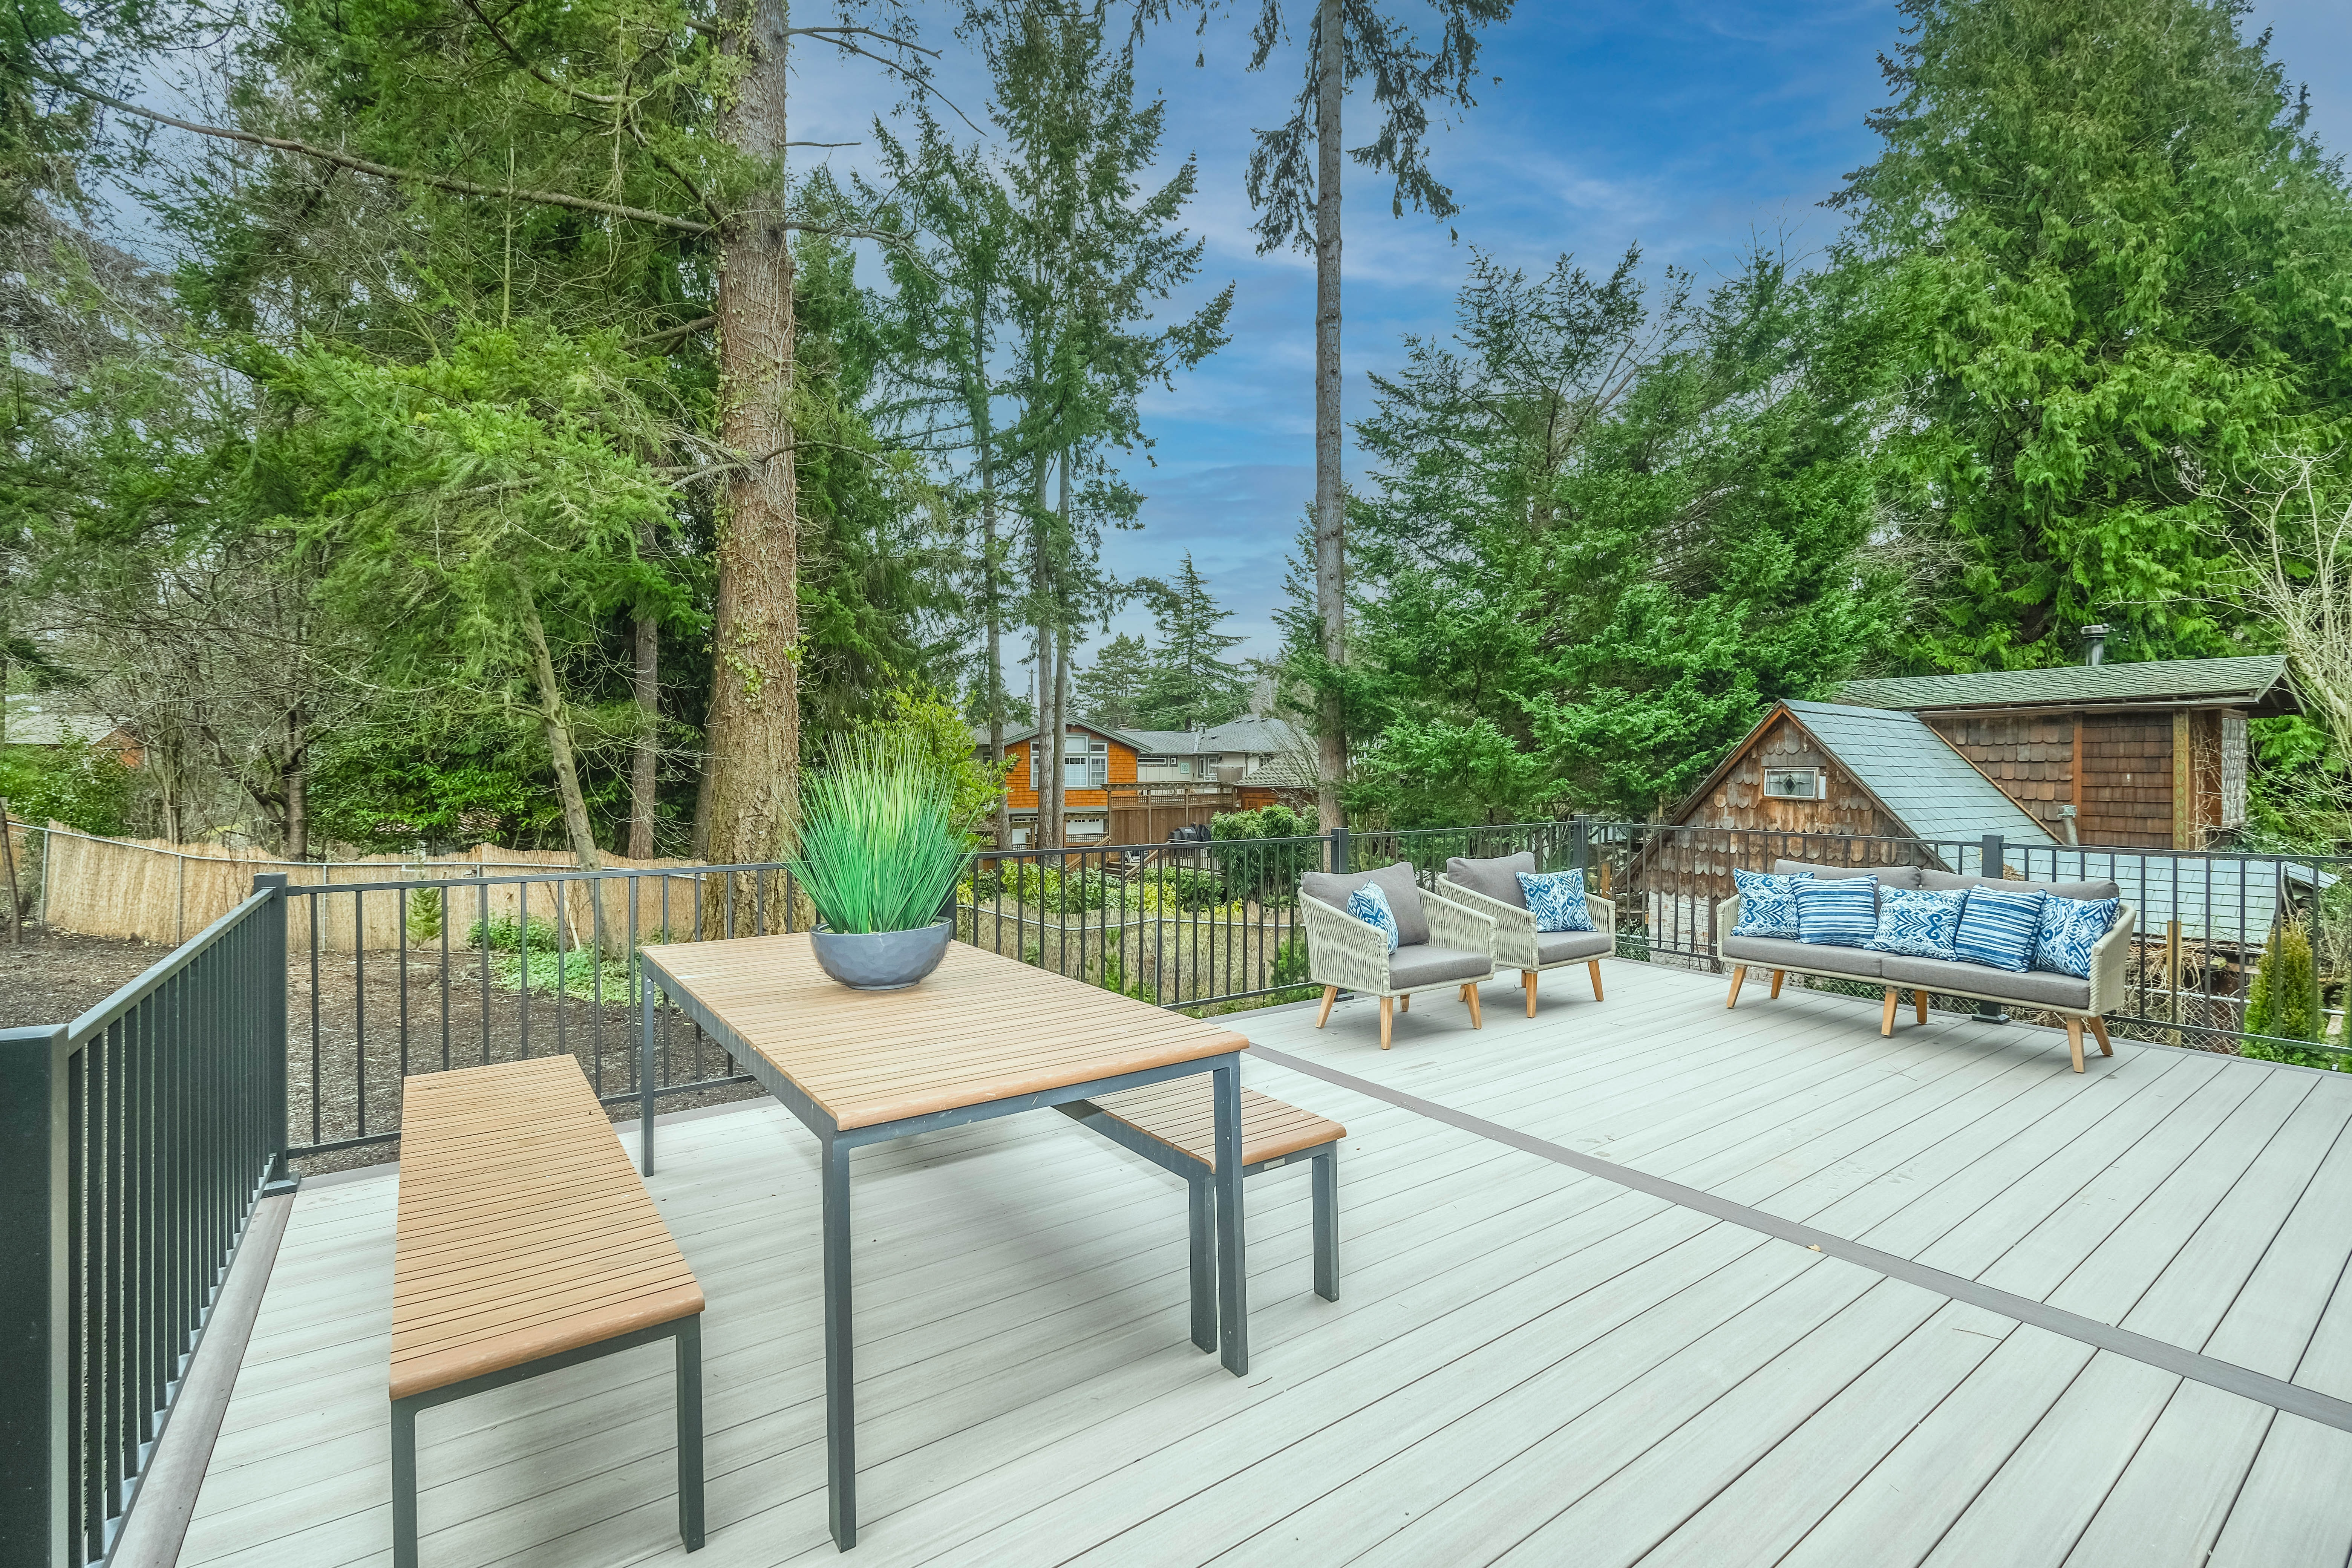 Deck Cleaning Dos and Don'ts's featured image